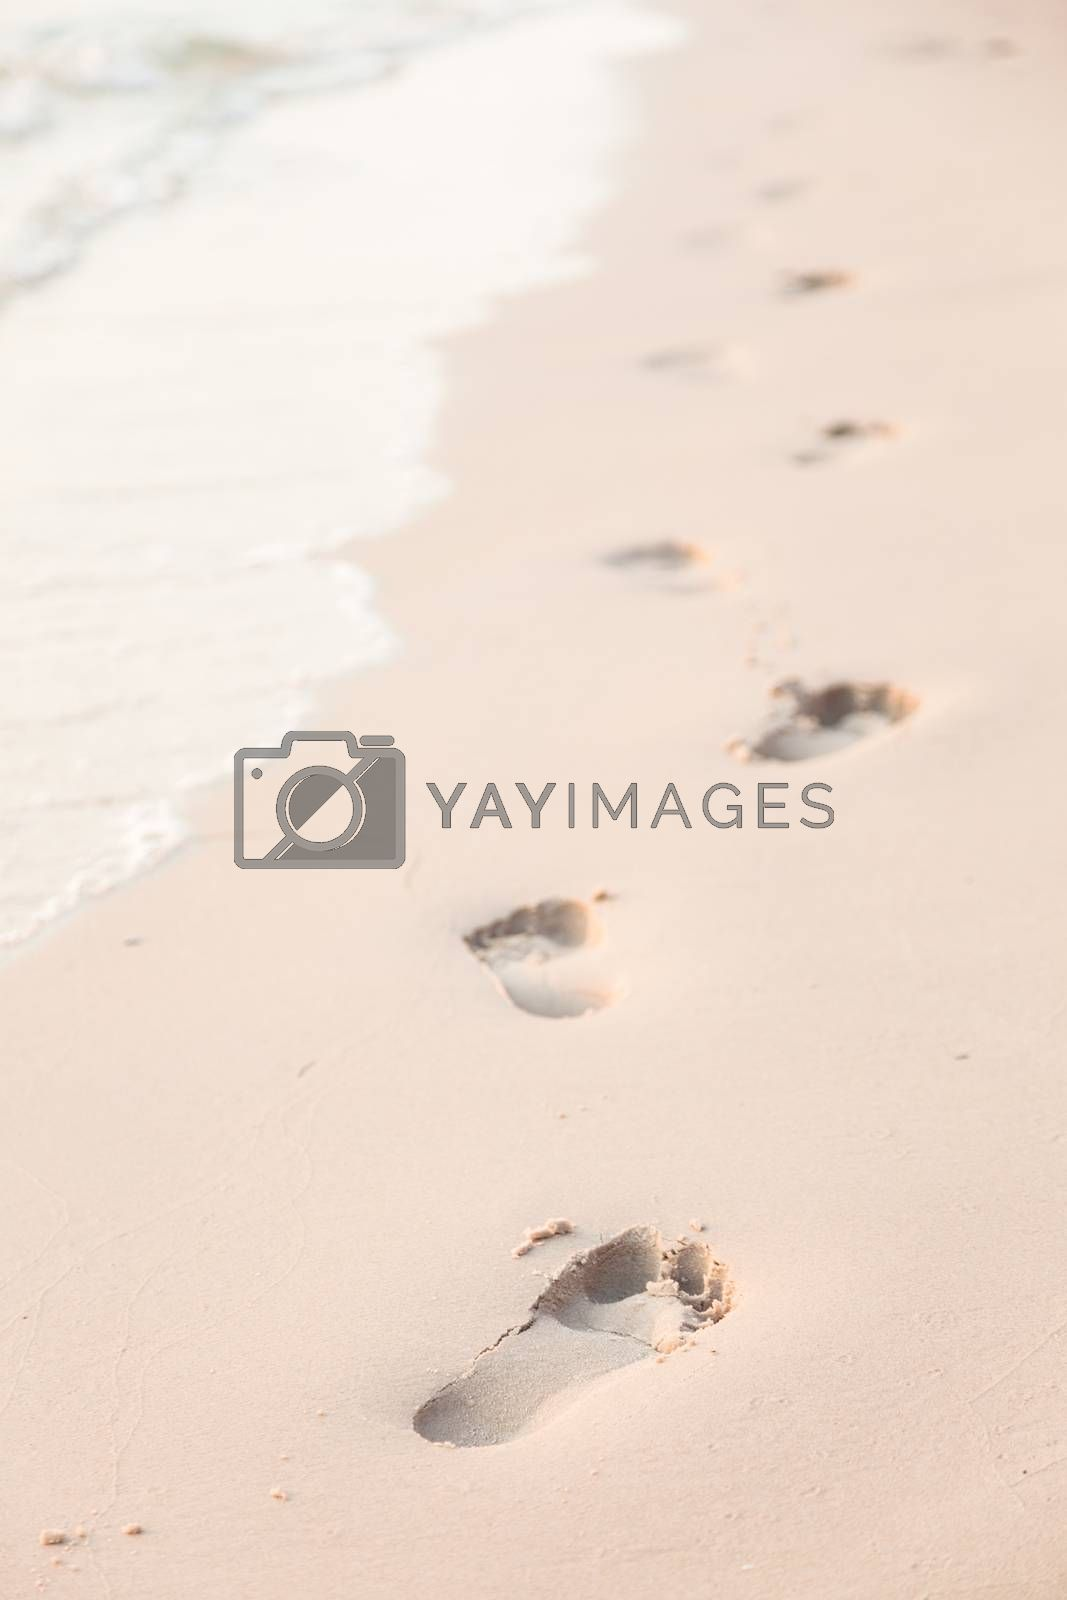 Footprints on the beach by a454